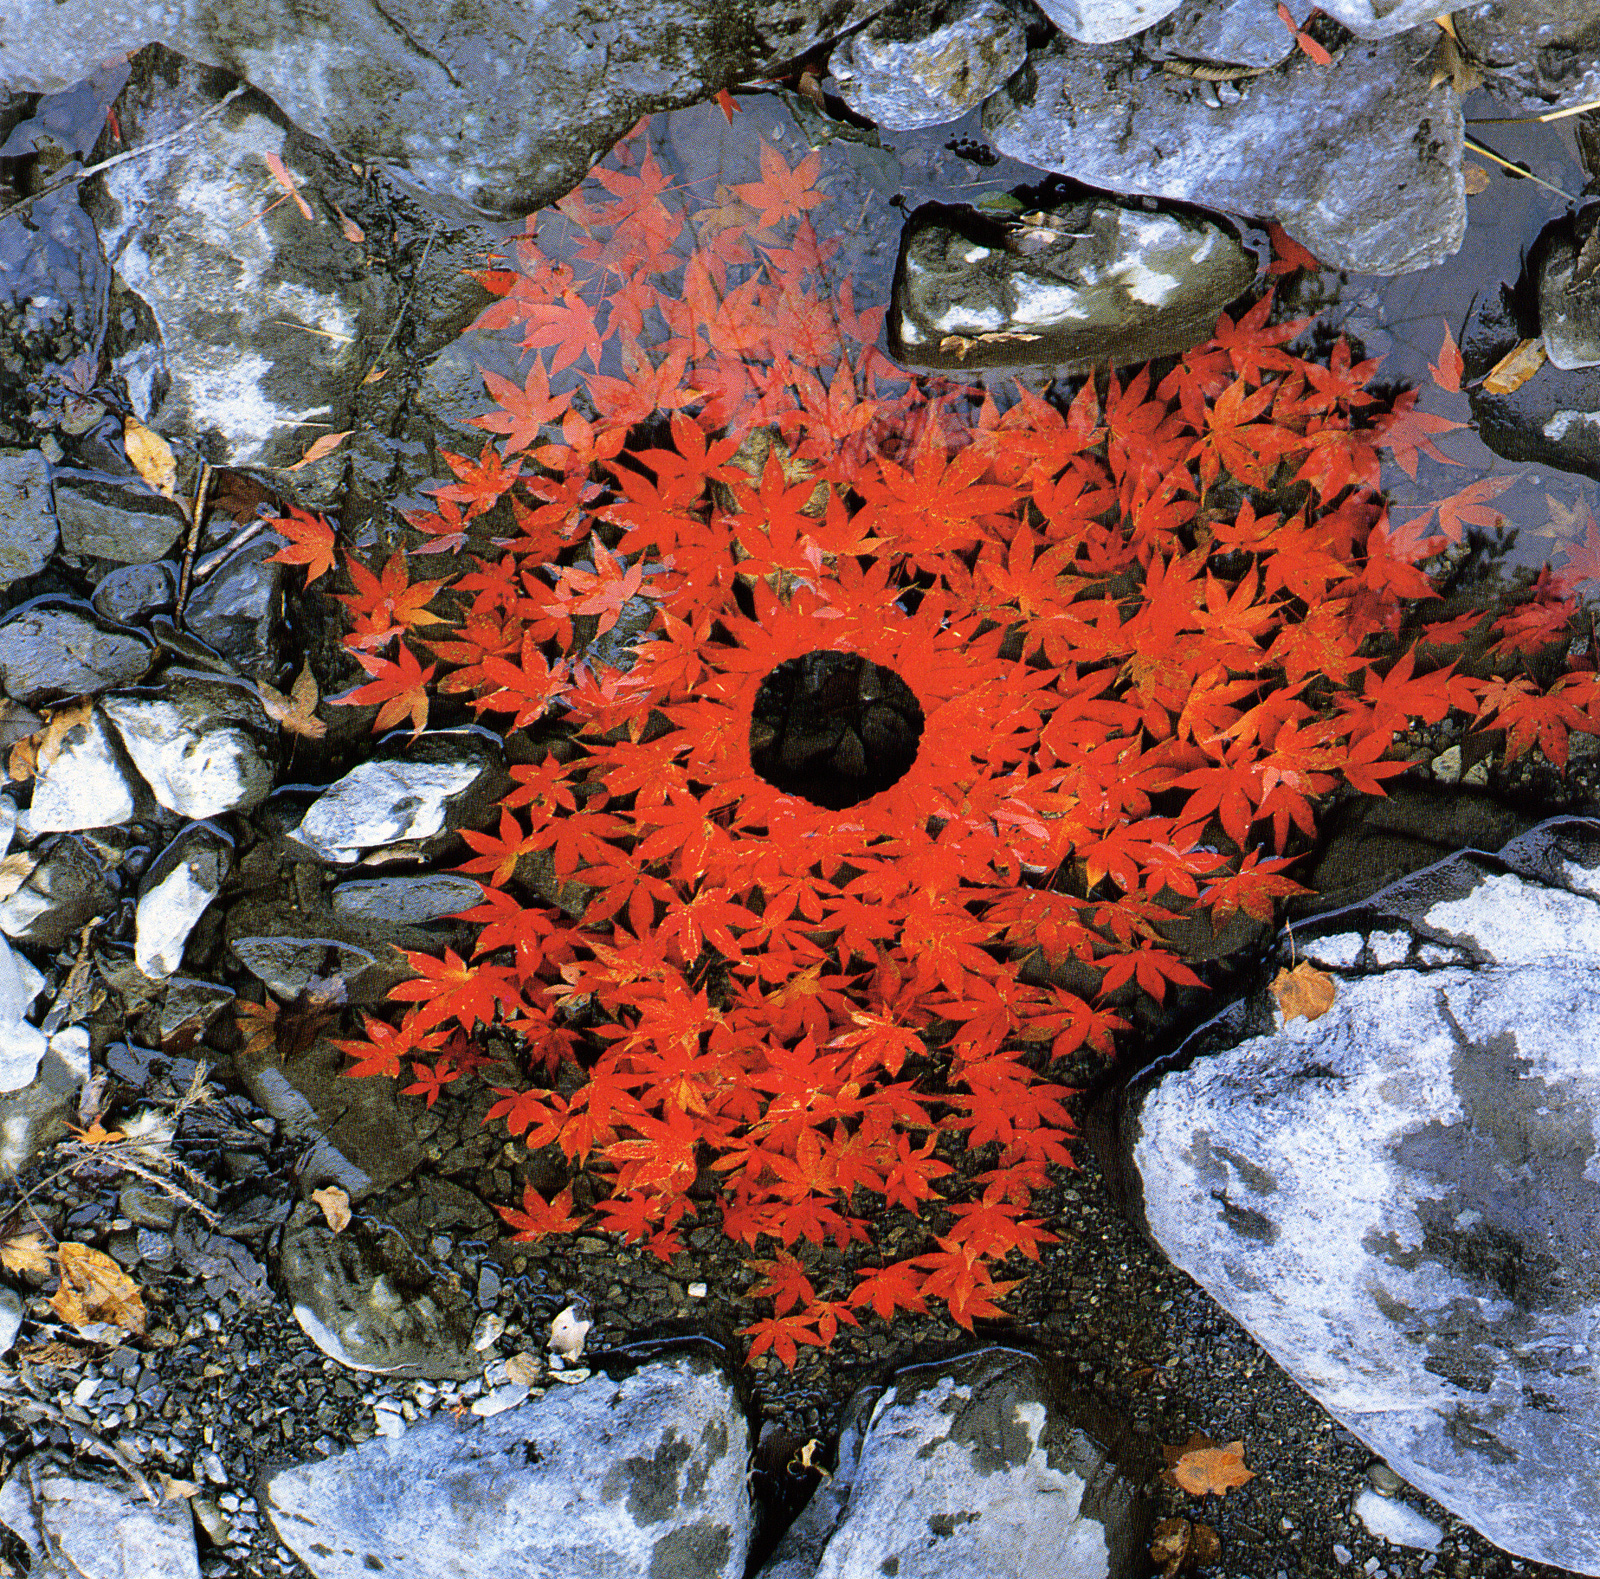 land art Andy Goldsworthy 03 Les oeuvres dans la nature dAndy Goldsworthy  photo bonus art